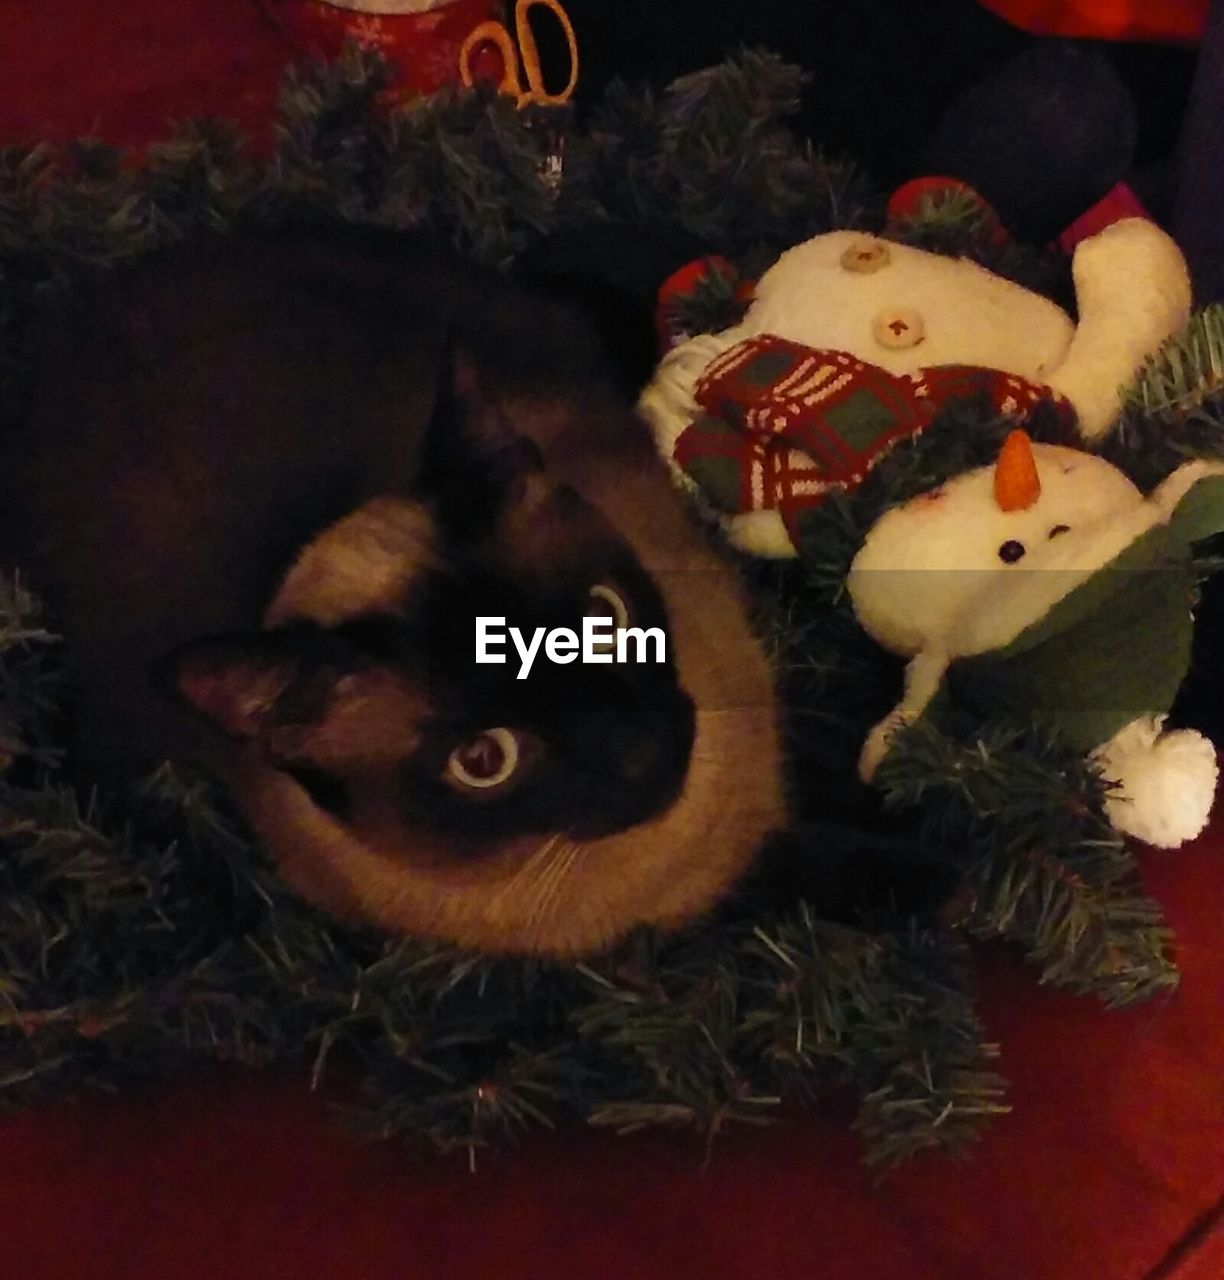 indoors, christmas decoration, christmas, domestic animals, celebration, no people, animal themes, pets, stuffed toy, looking at camera, night, mammal, portrait, close-up